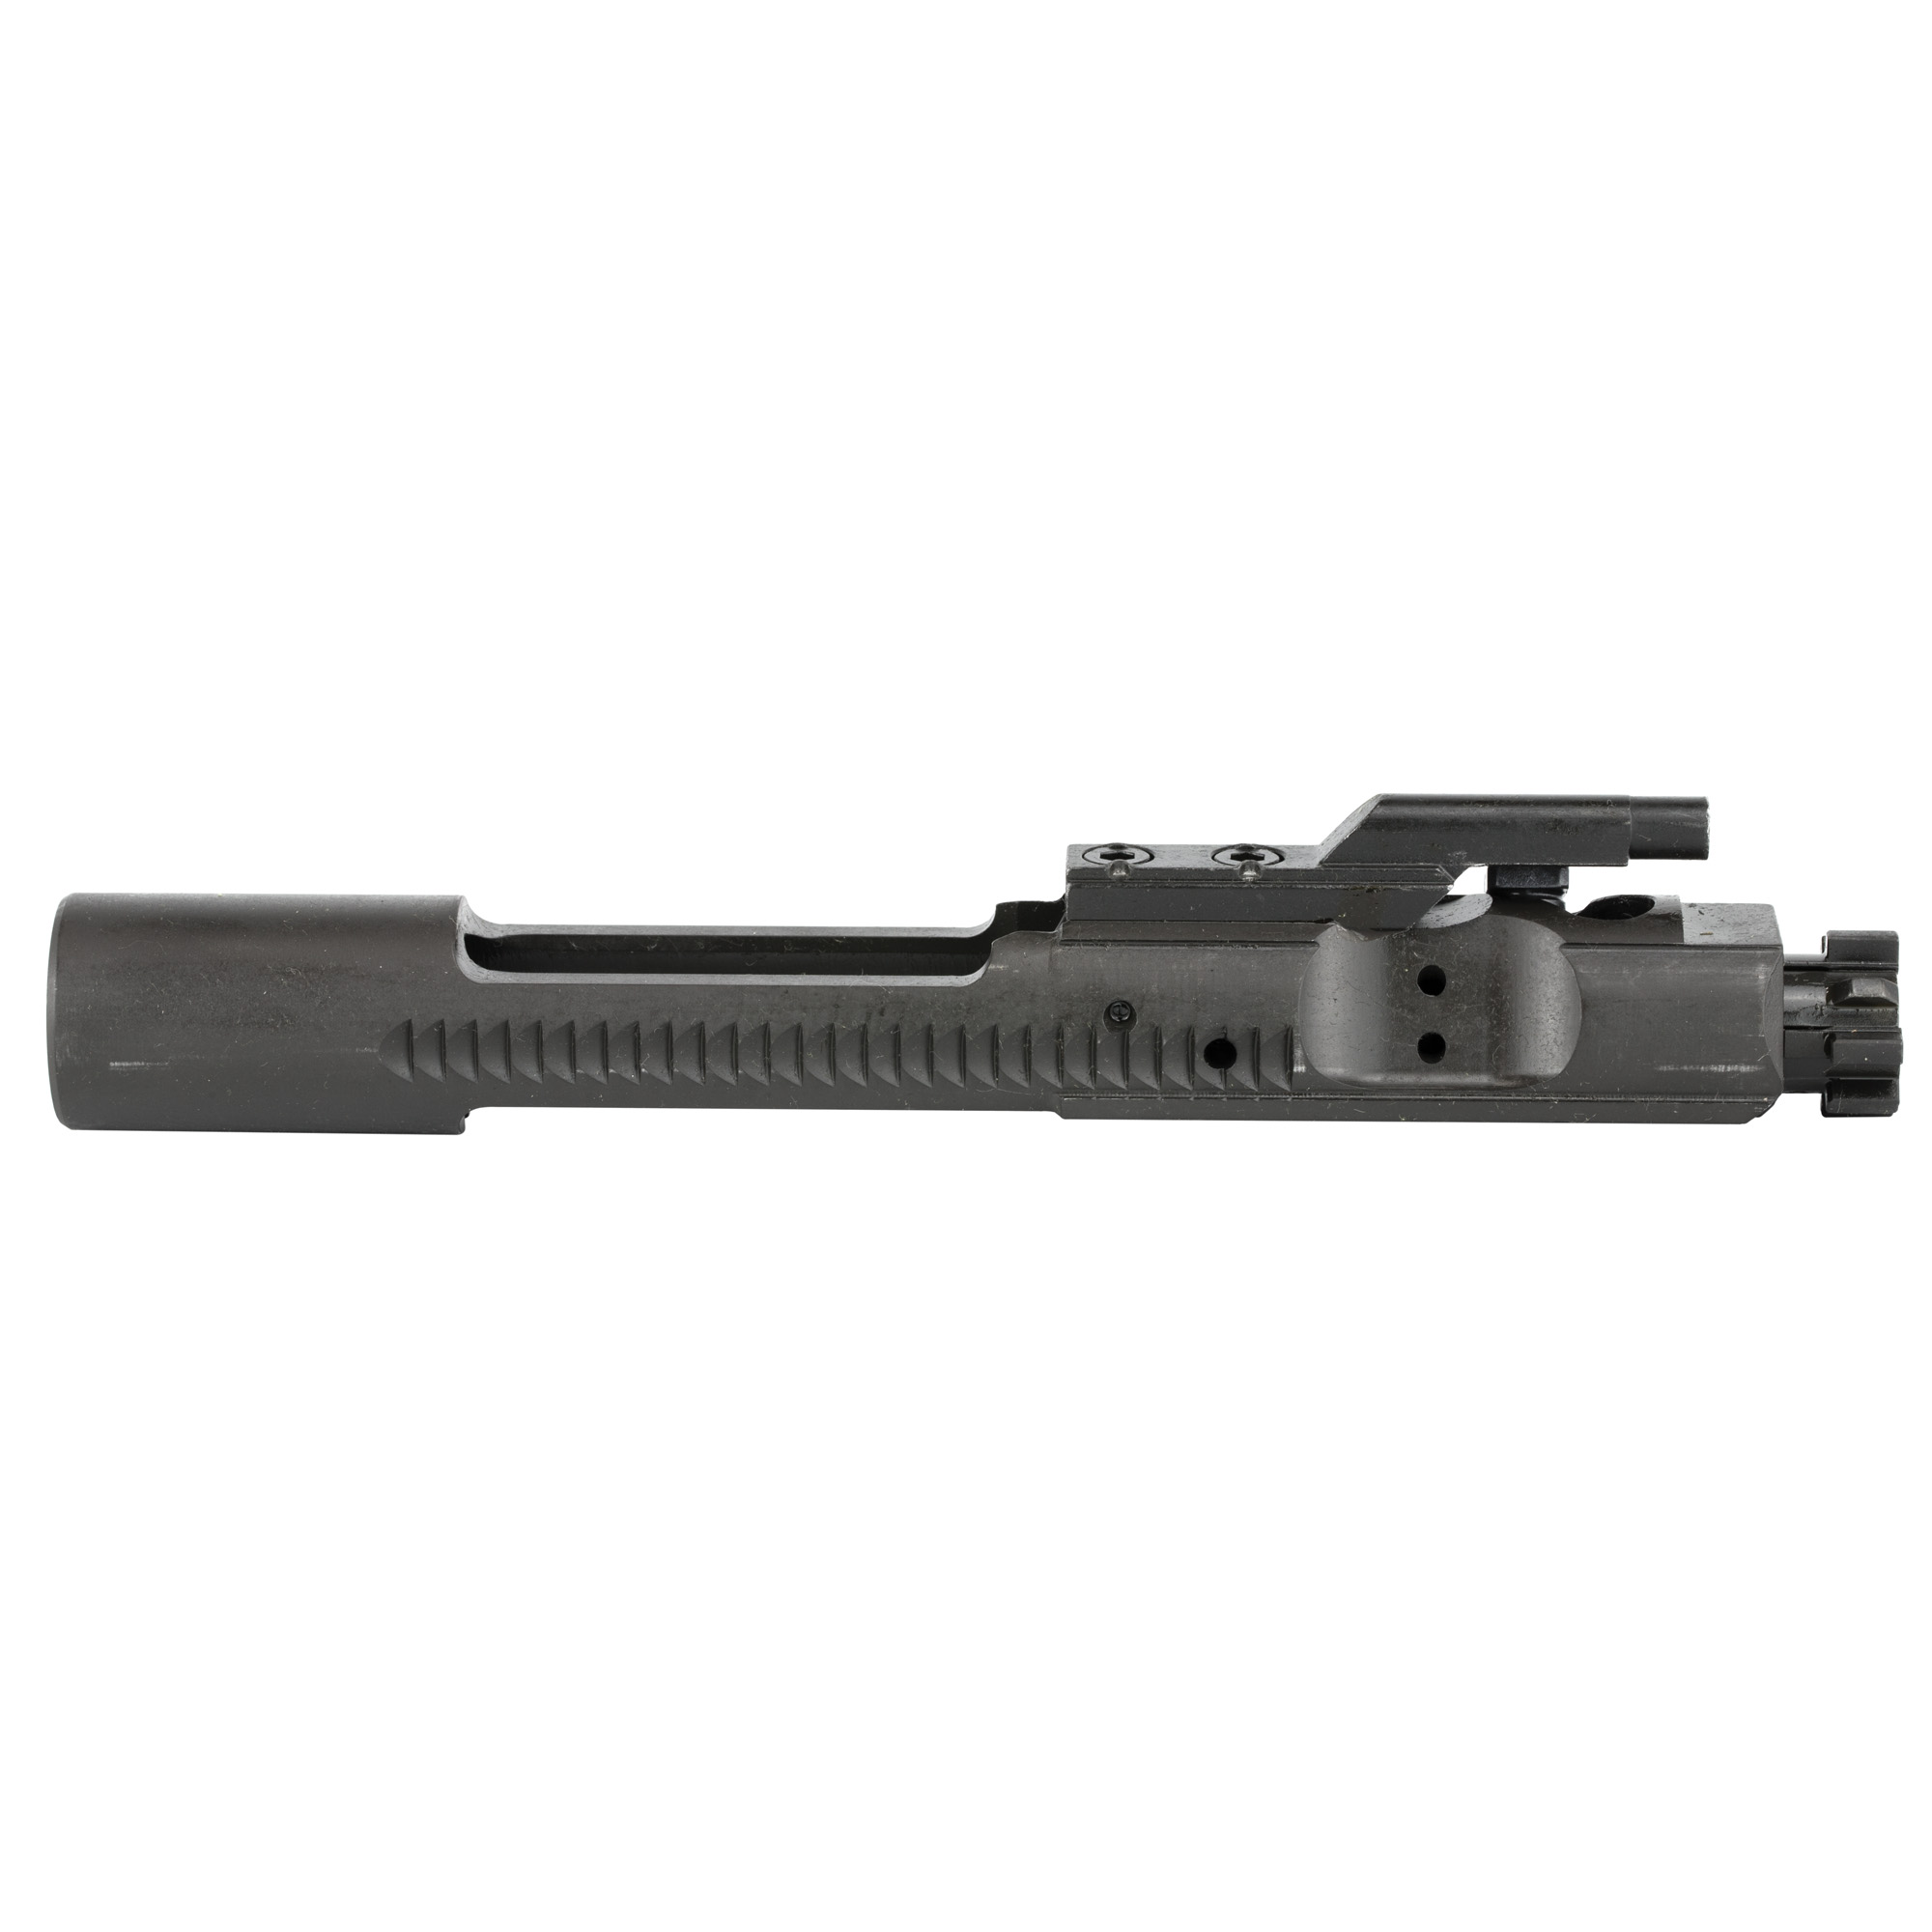 Colt Mil-Spec Bolt Carrier Group.